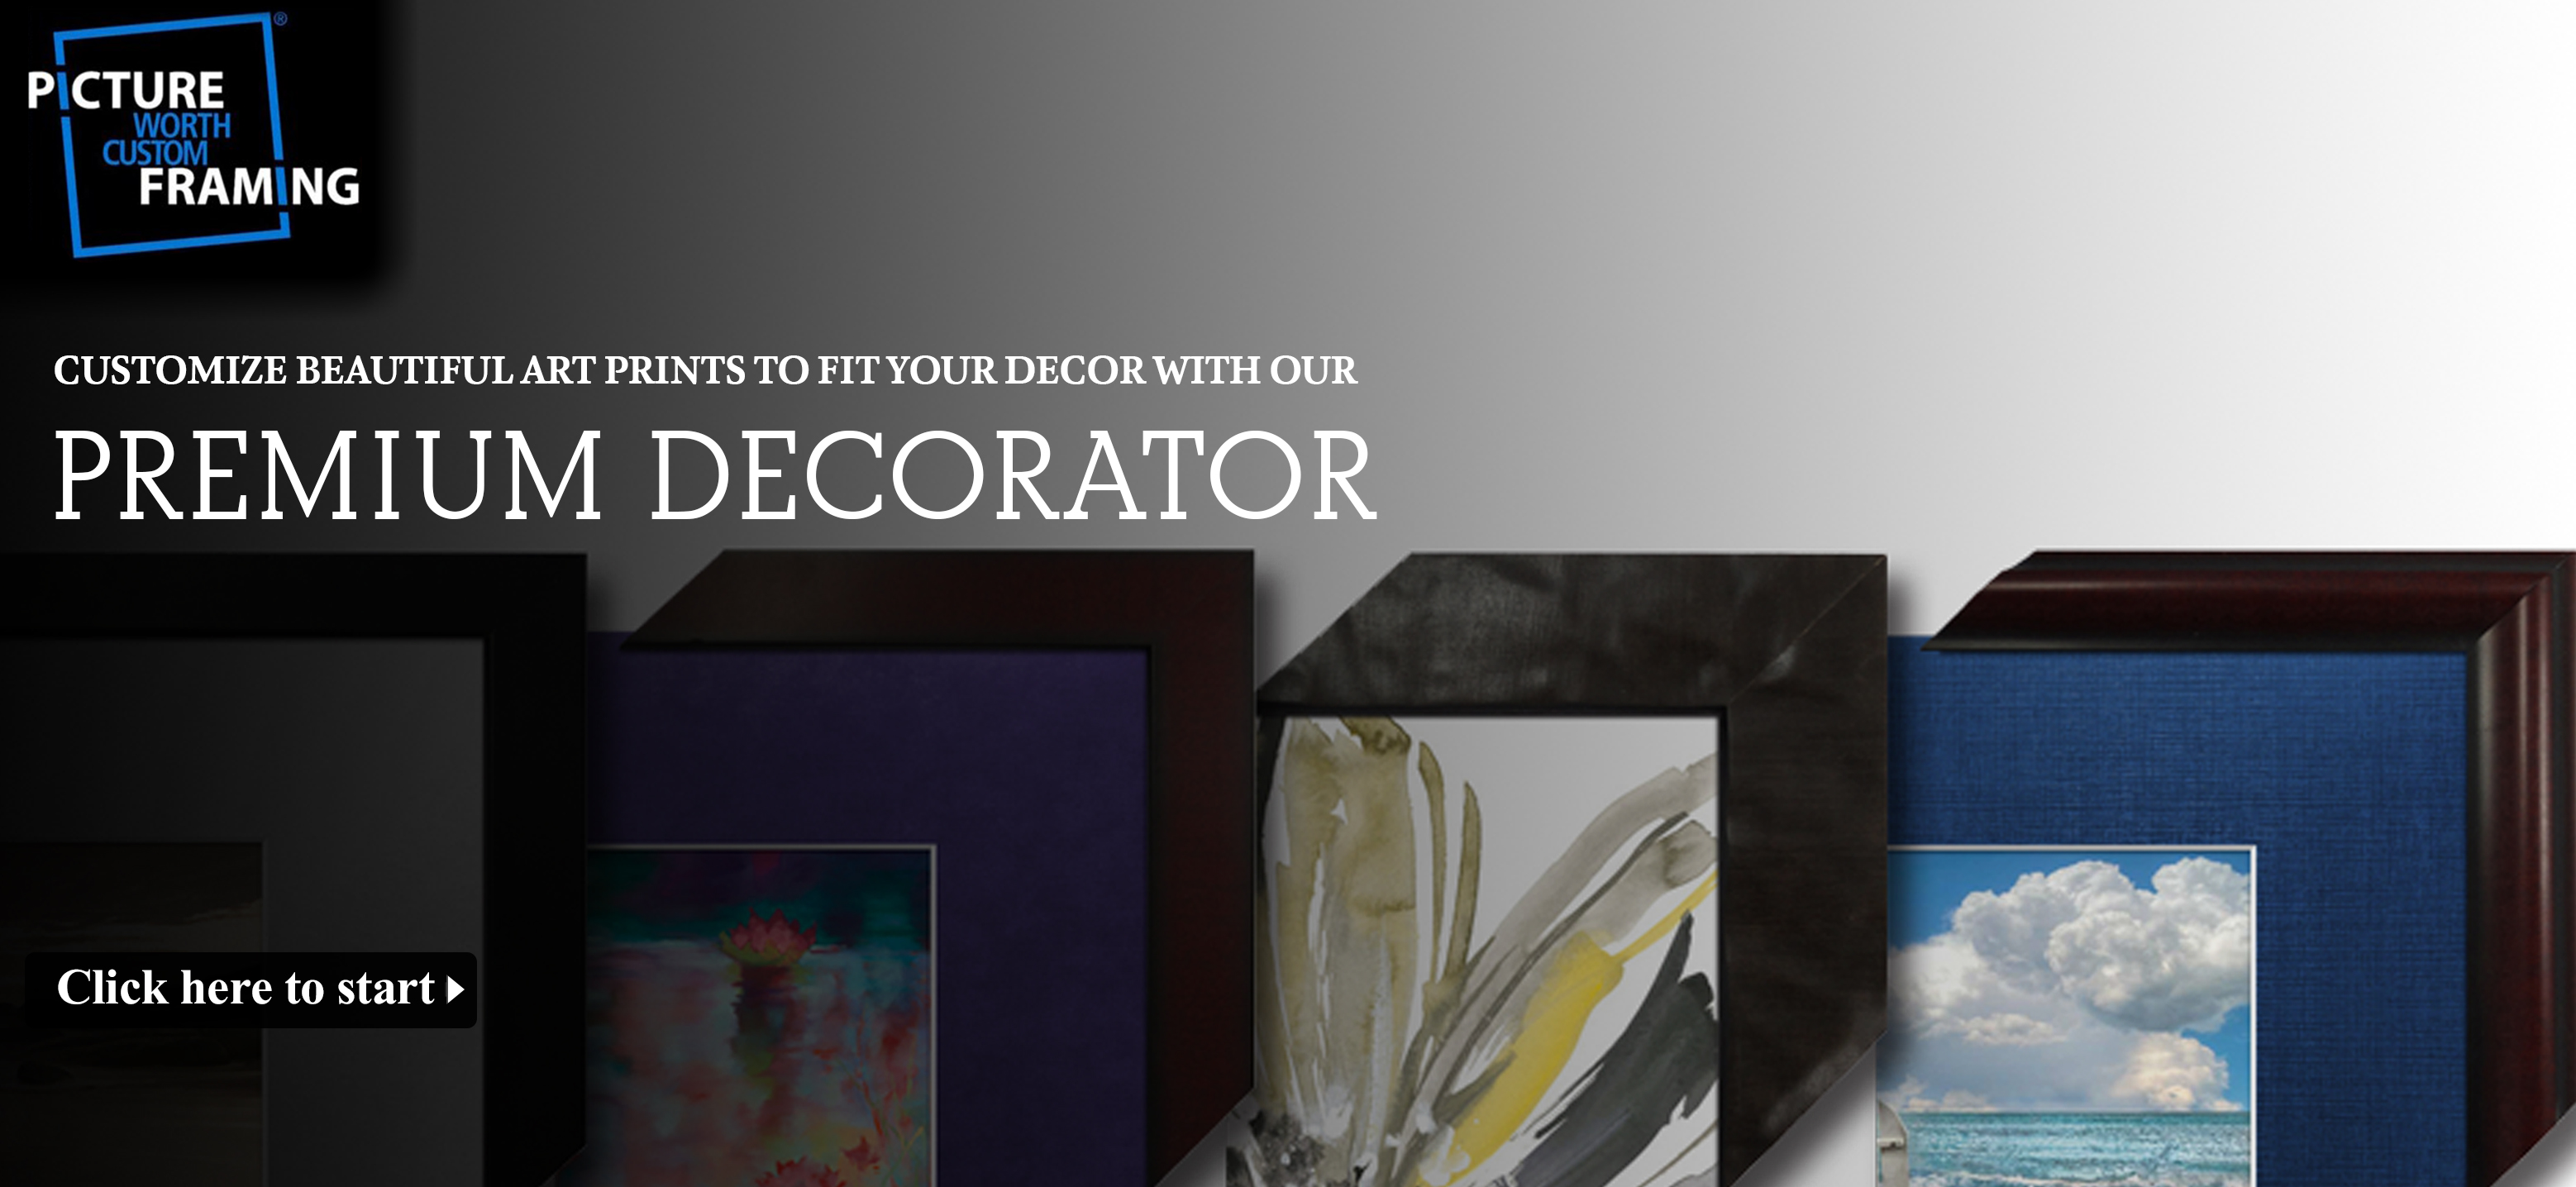 best custom art and wall dcor online picture worth custom framing